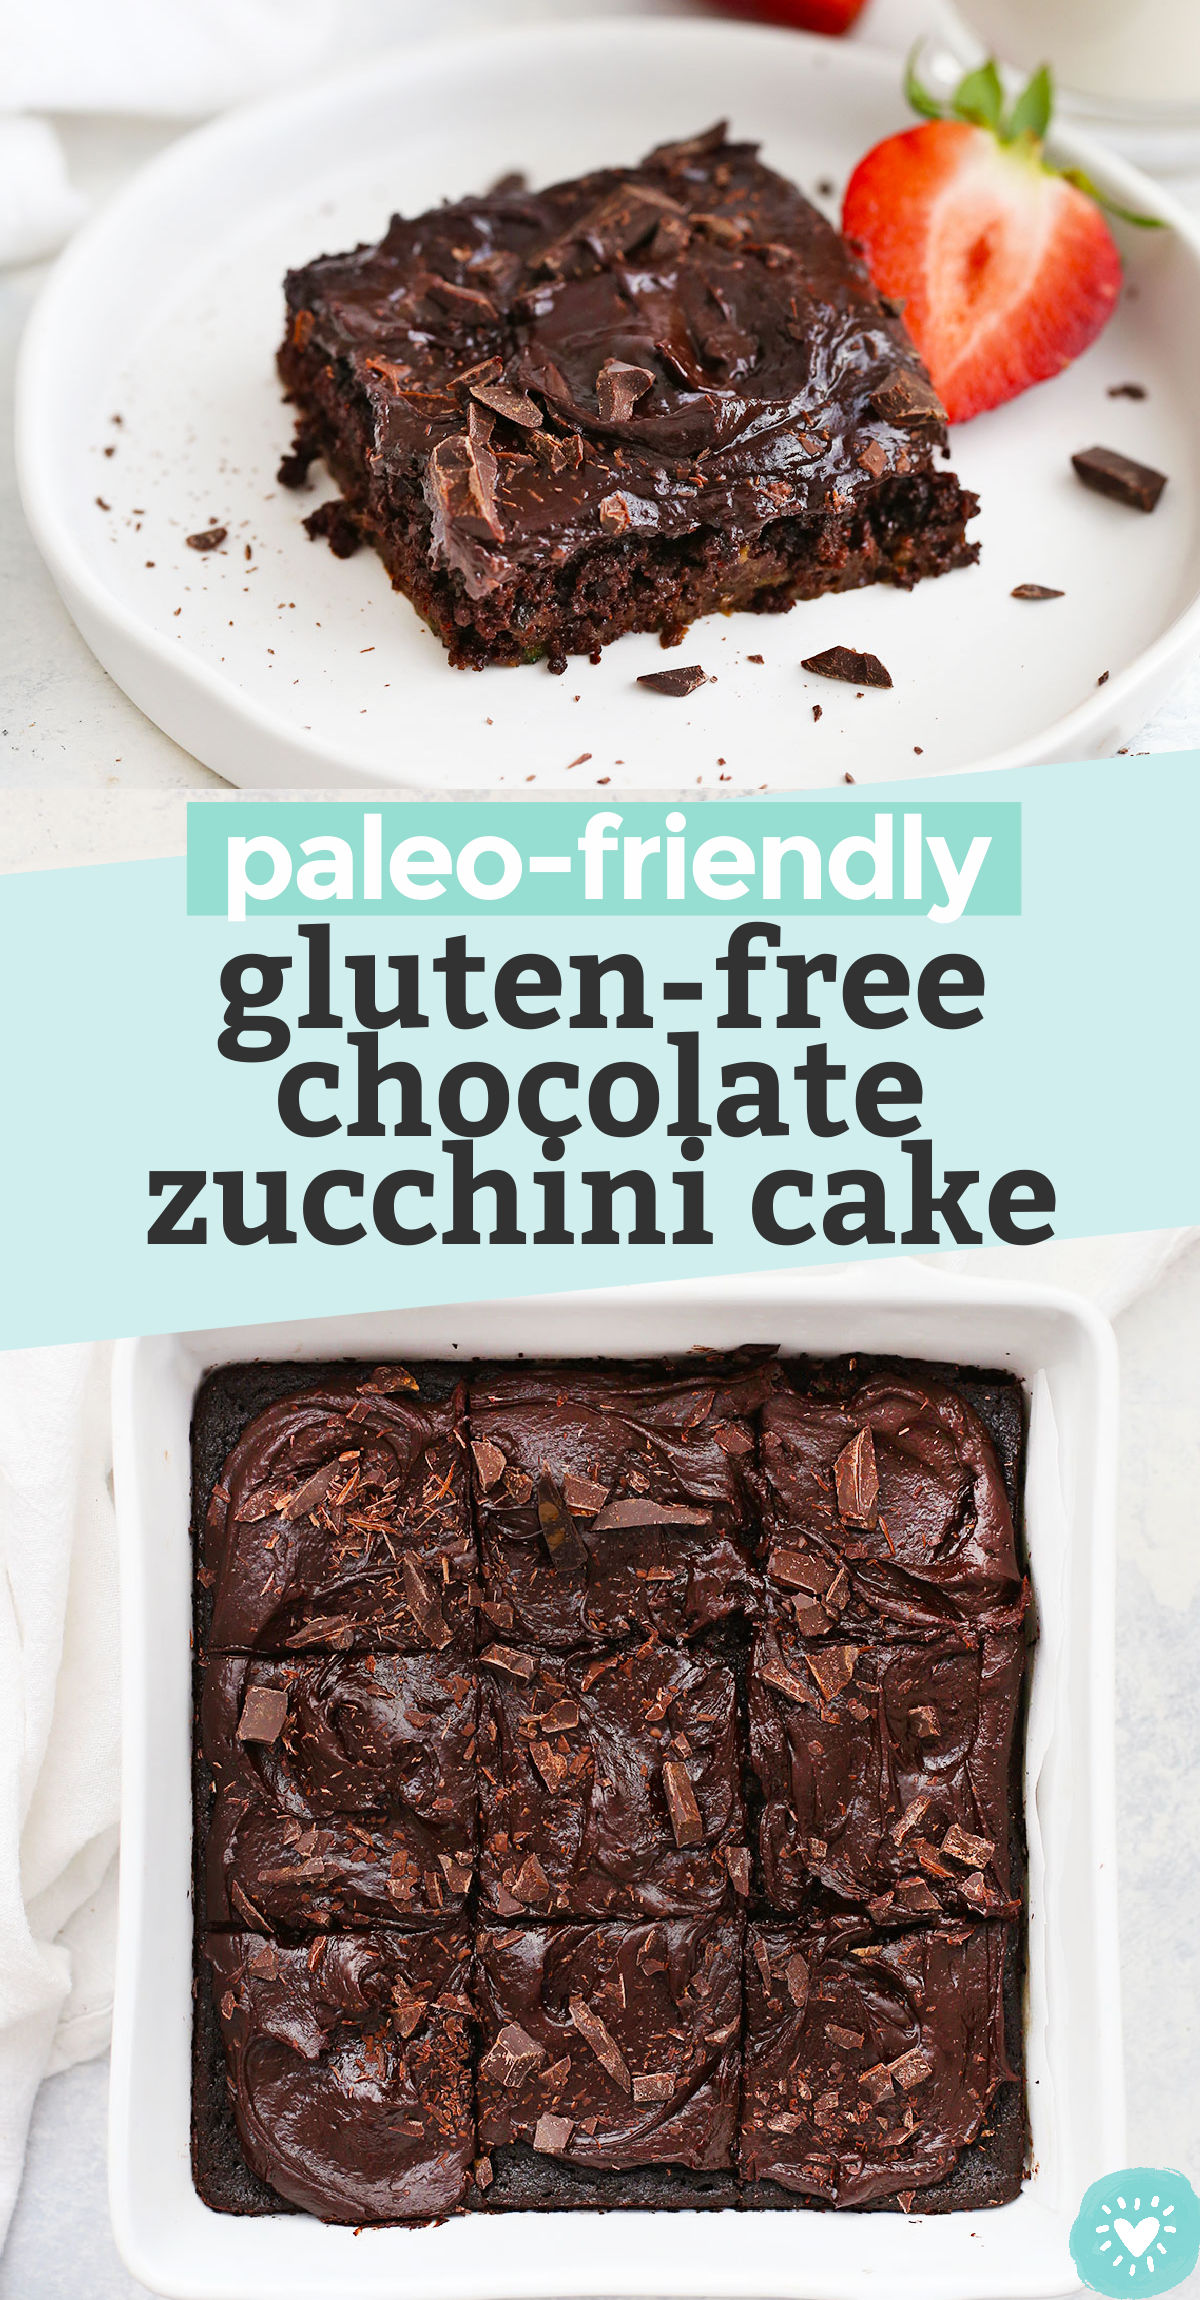 """Collage of images of gluten-free chocolate zucchini cake with text overlay that reads """"paleo-friendly gluten-free chocolate zucchini cake"""""""